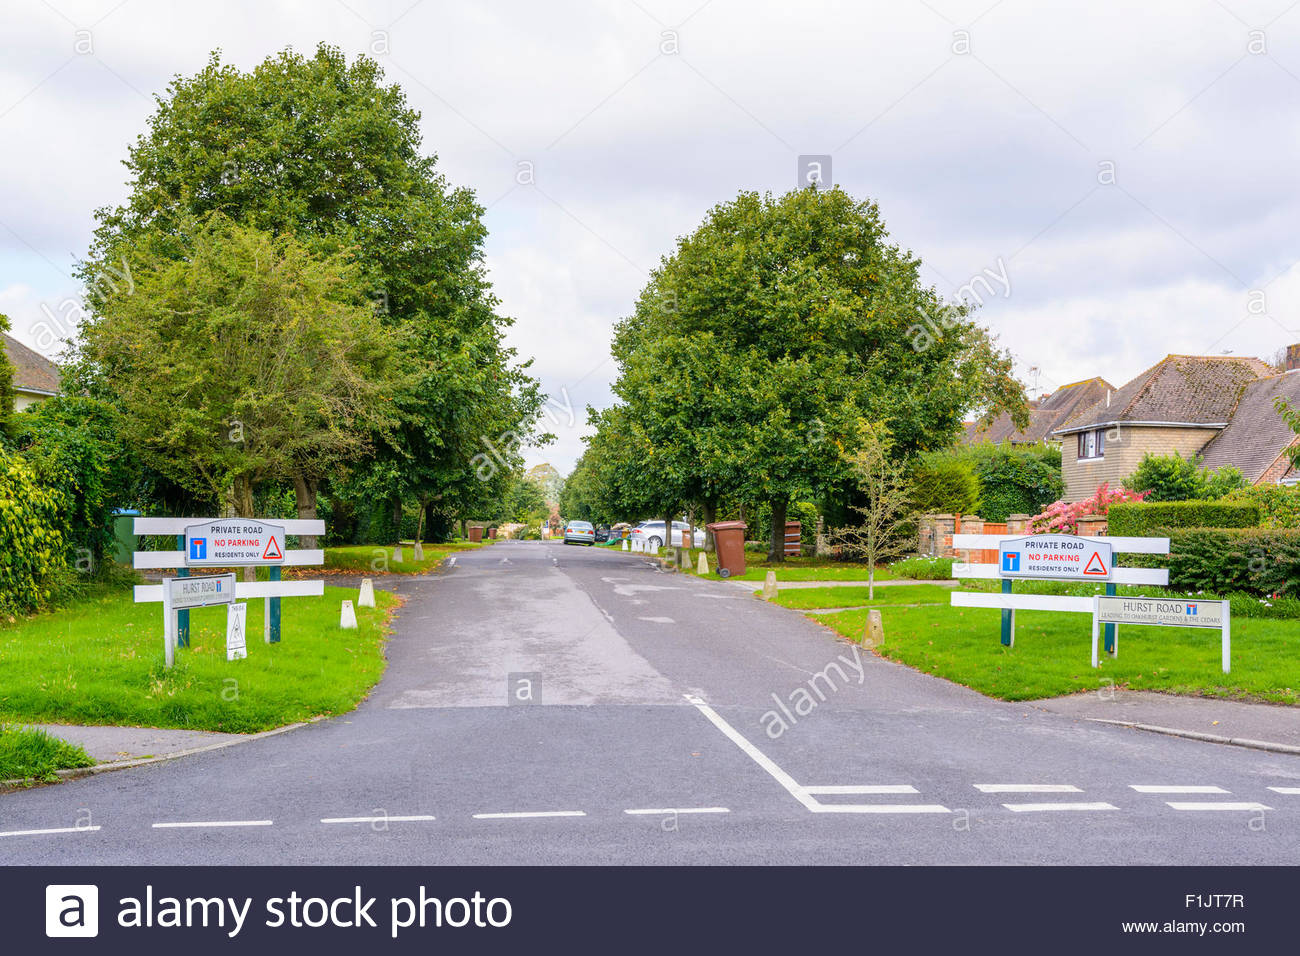 Private Road for residents only in a small town in England, UK. - Stock Image